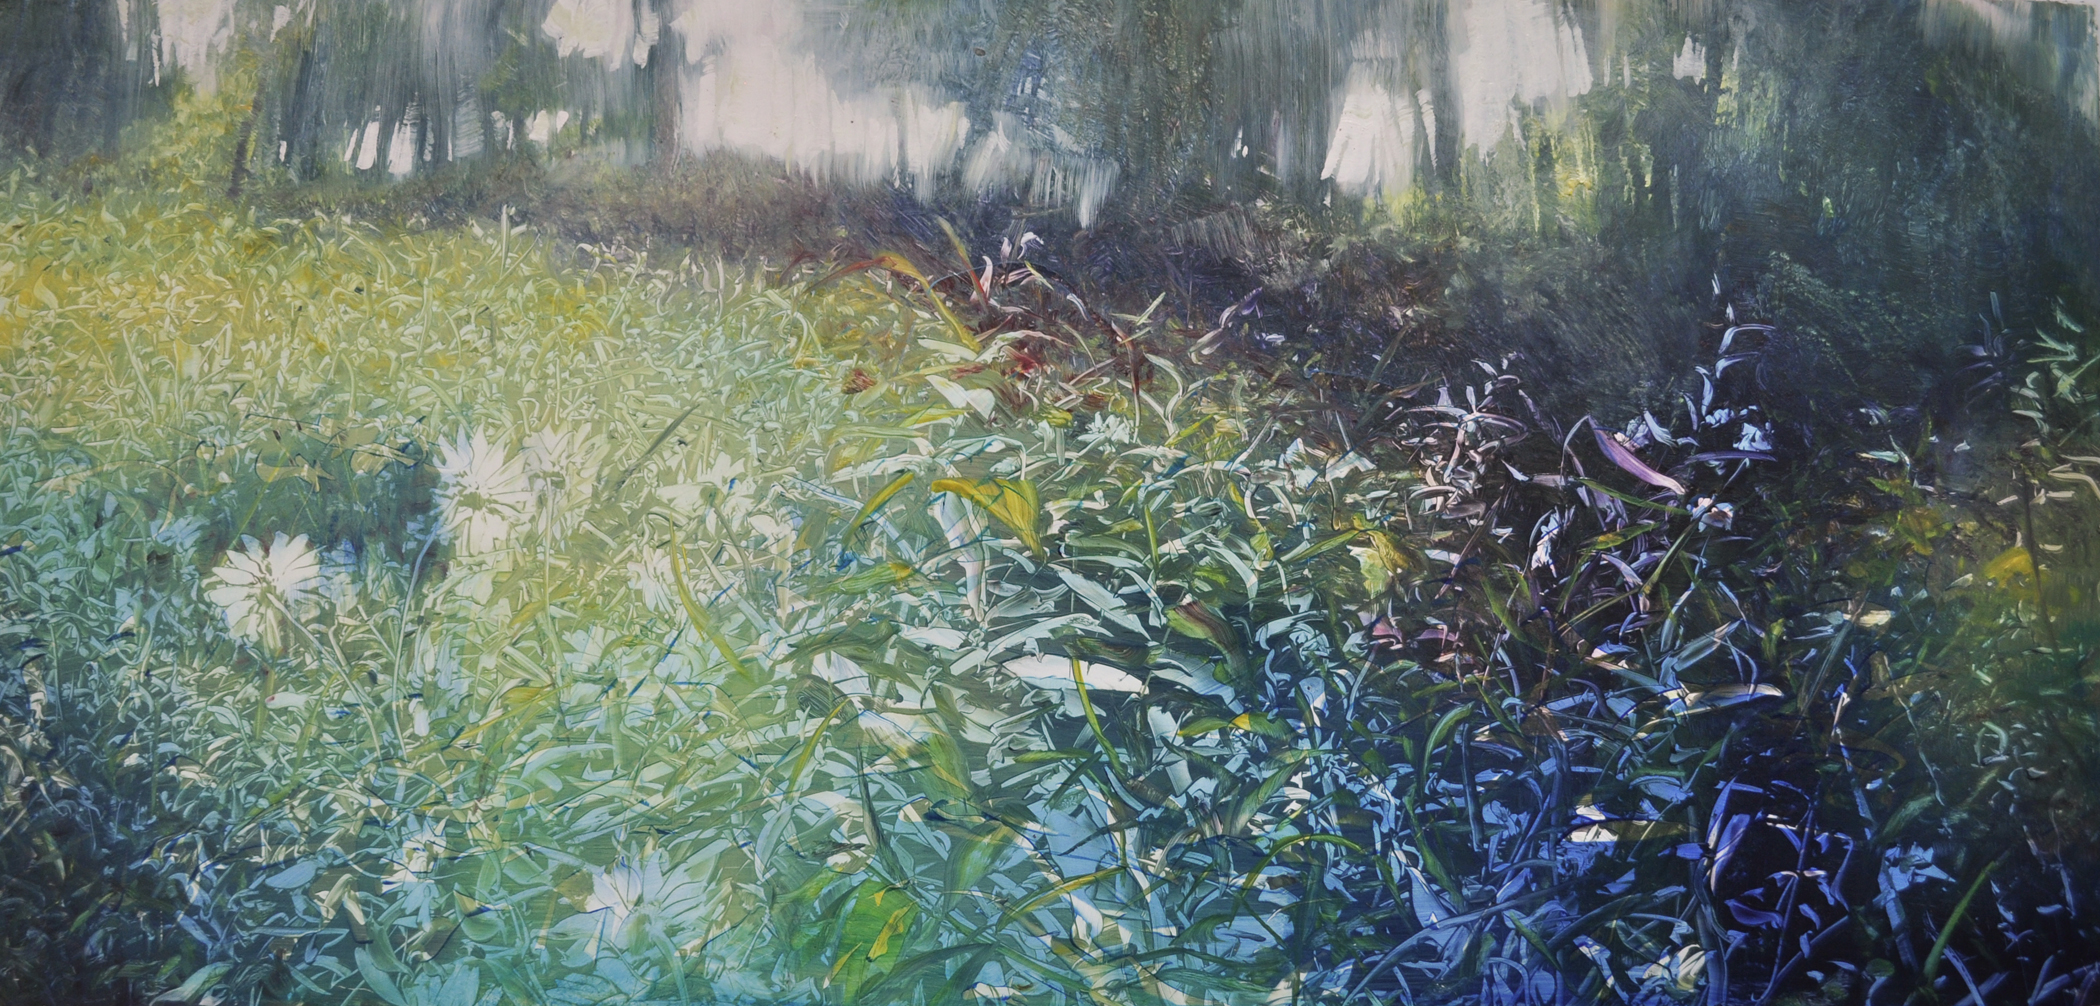 """Randall Farm Wildflower Meadow"", oil on enameled aluminum, 12x24, $1,600"